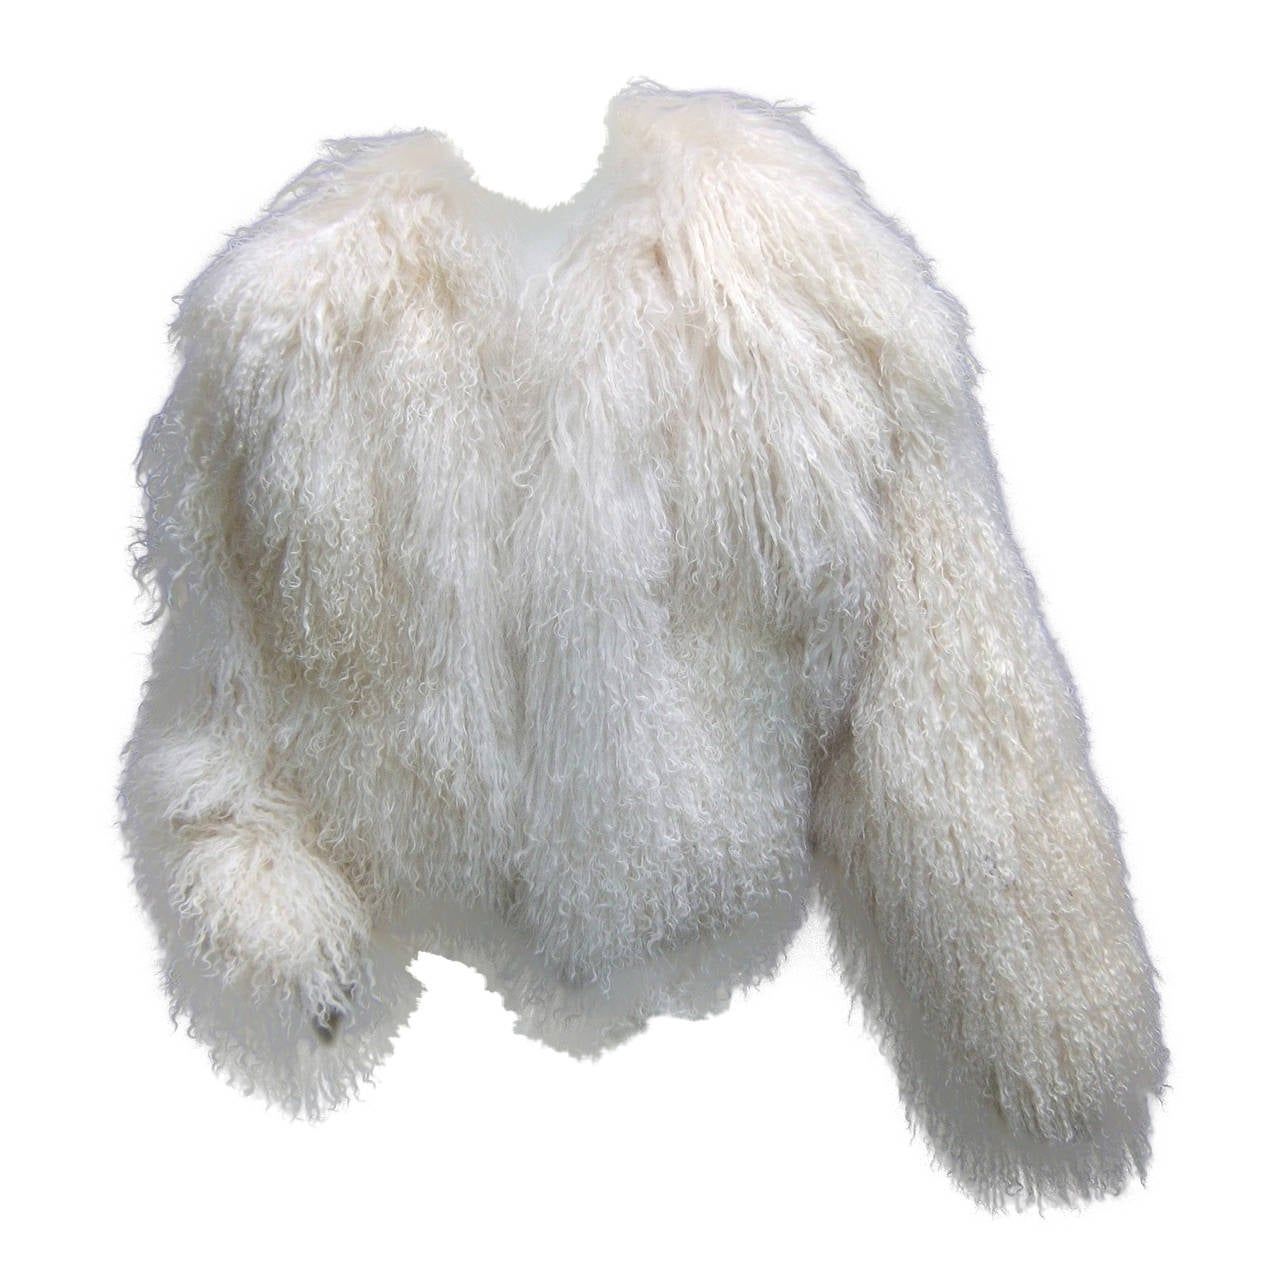 Tibetan Fluffy Lamb Fur Chubby Jacket for Neiman Marcus c 1980s 1